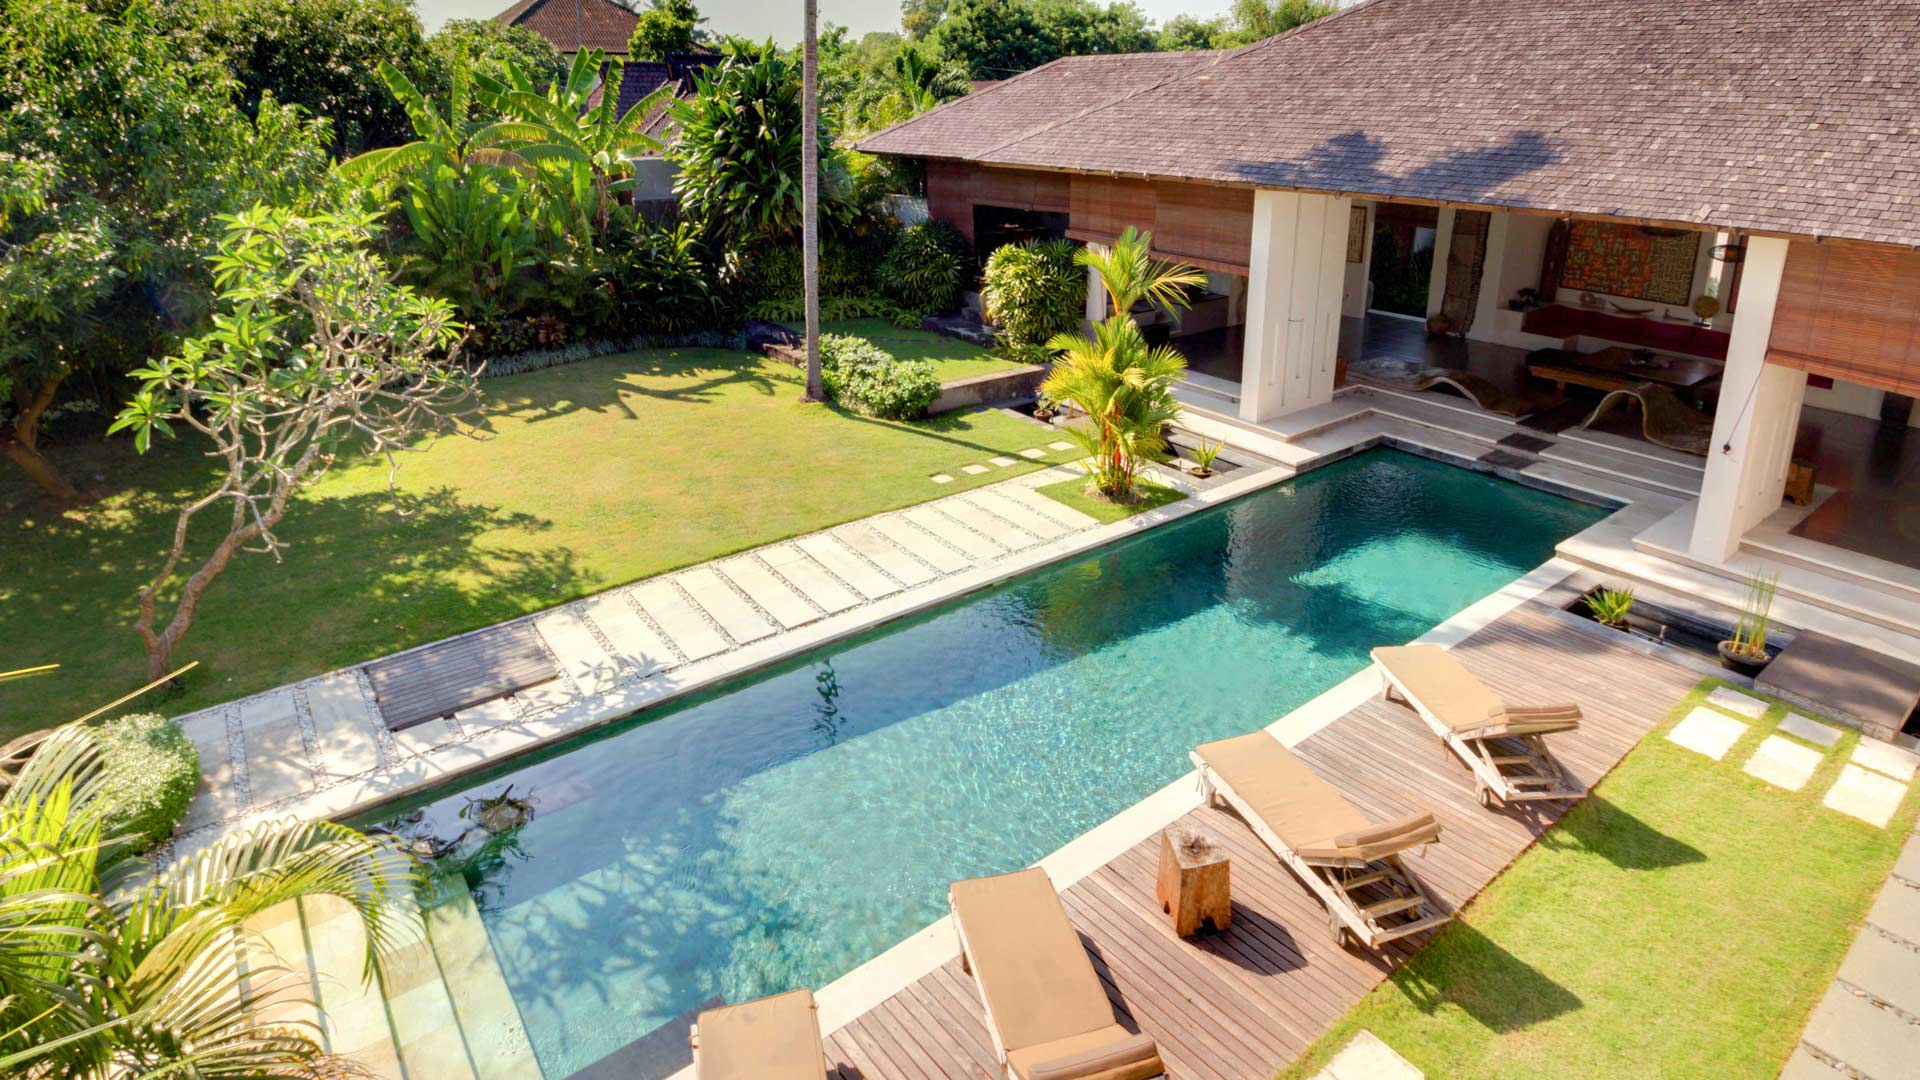 Tangram Rumah Maison Bali Location Great Always The Lowest Price With